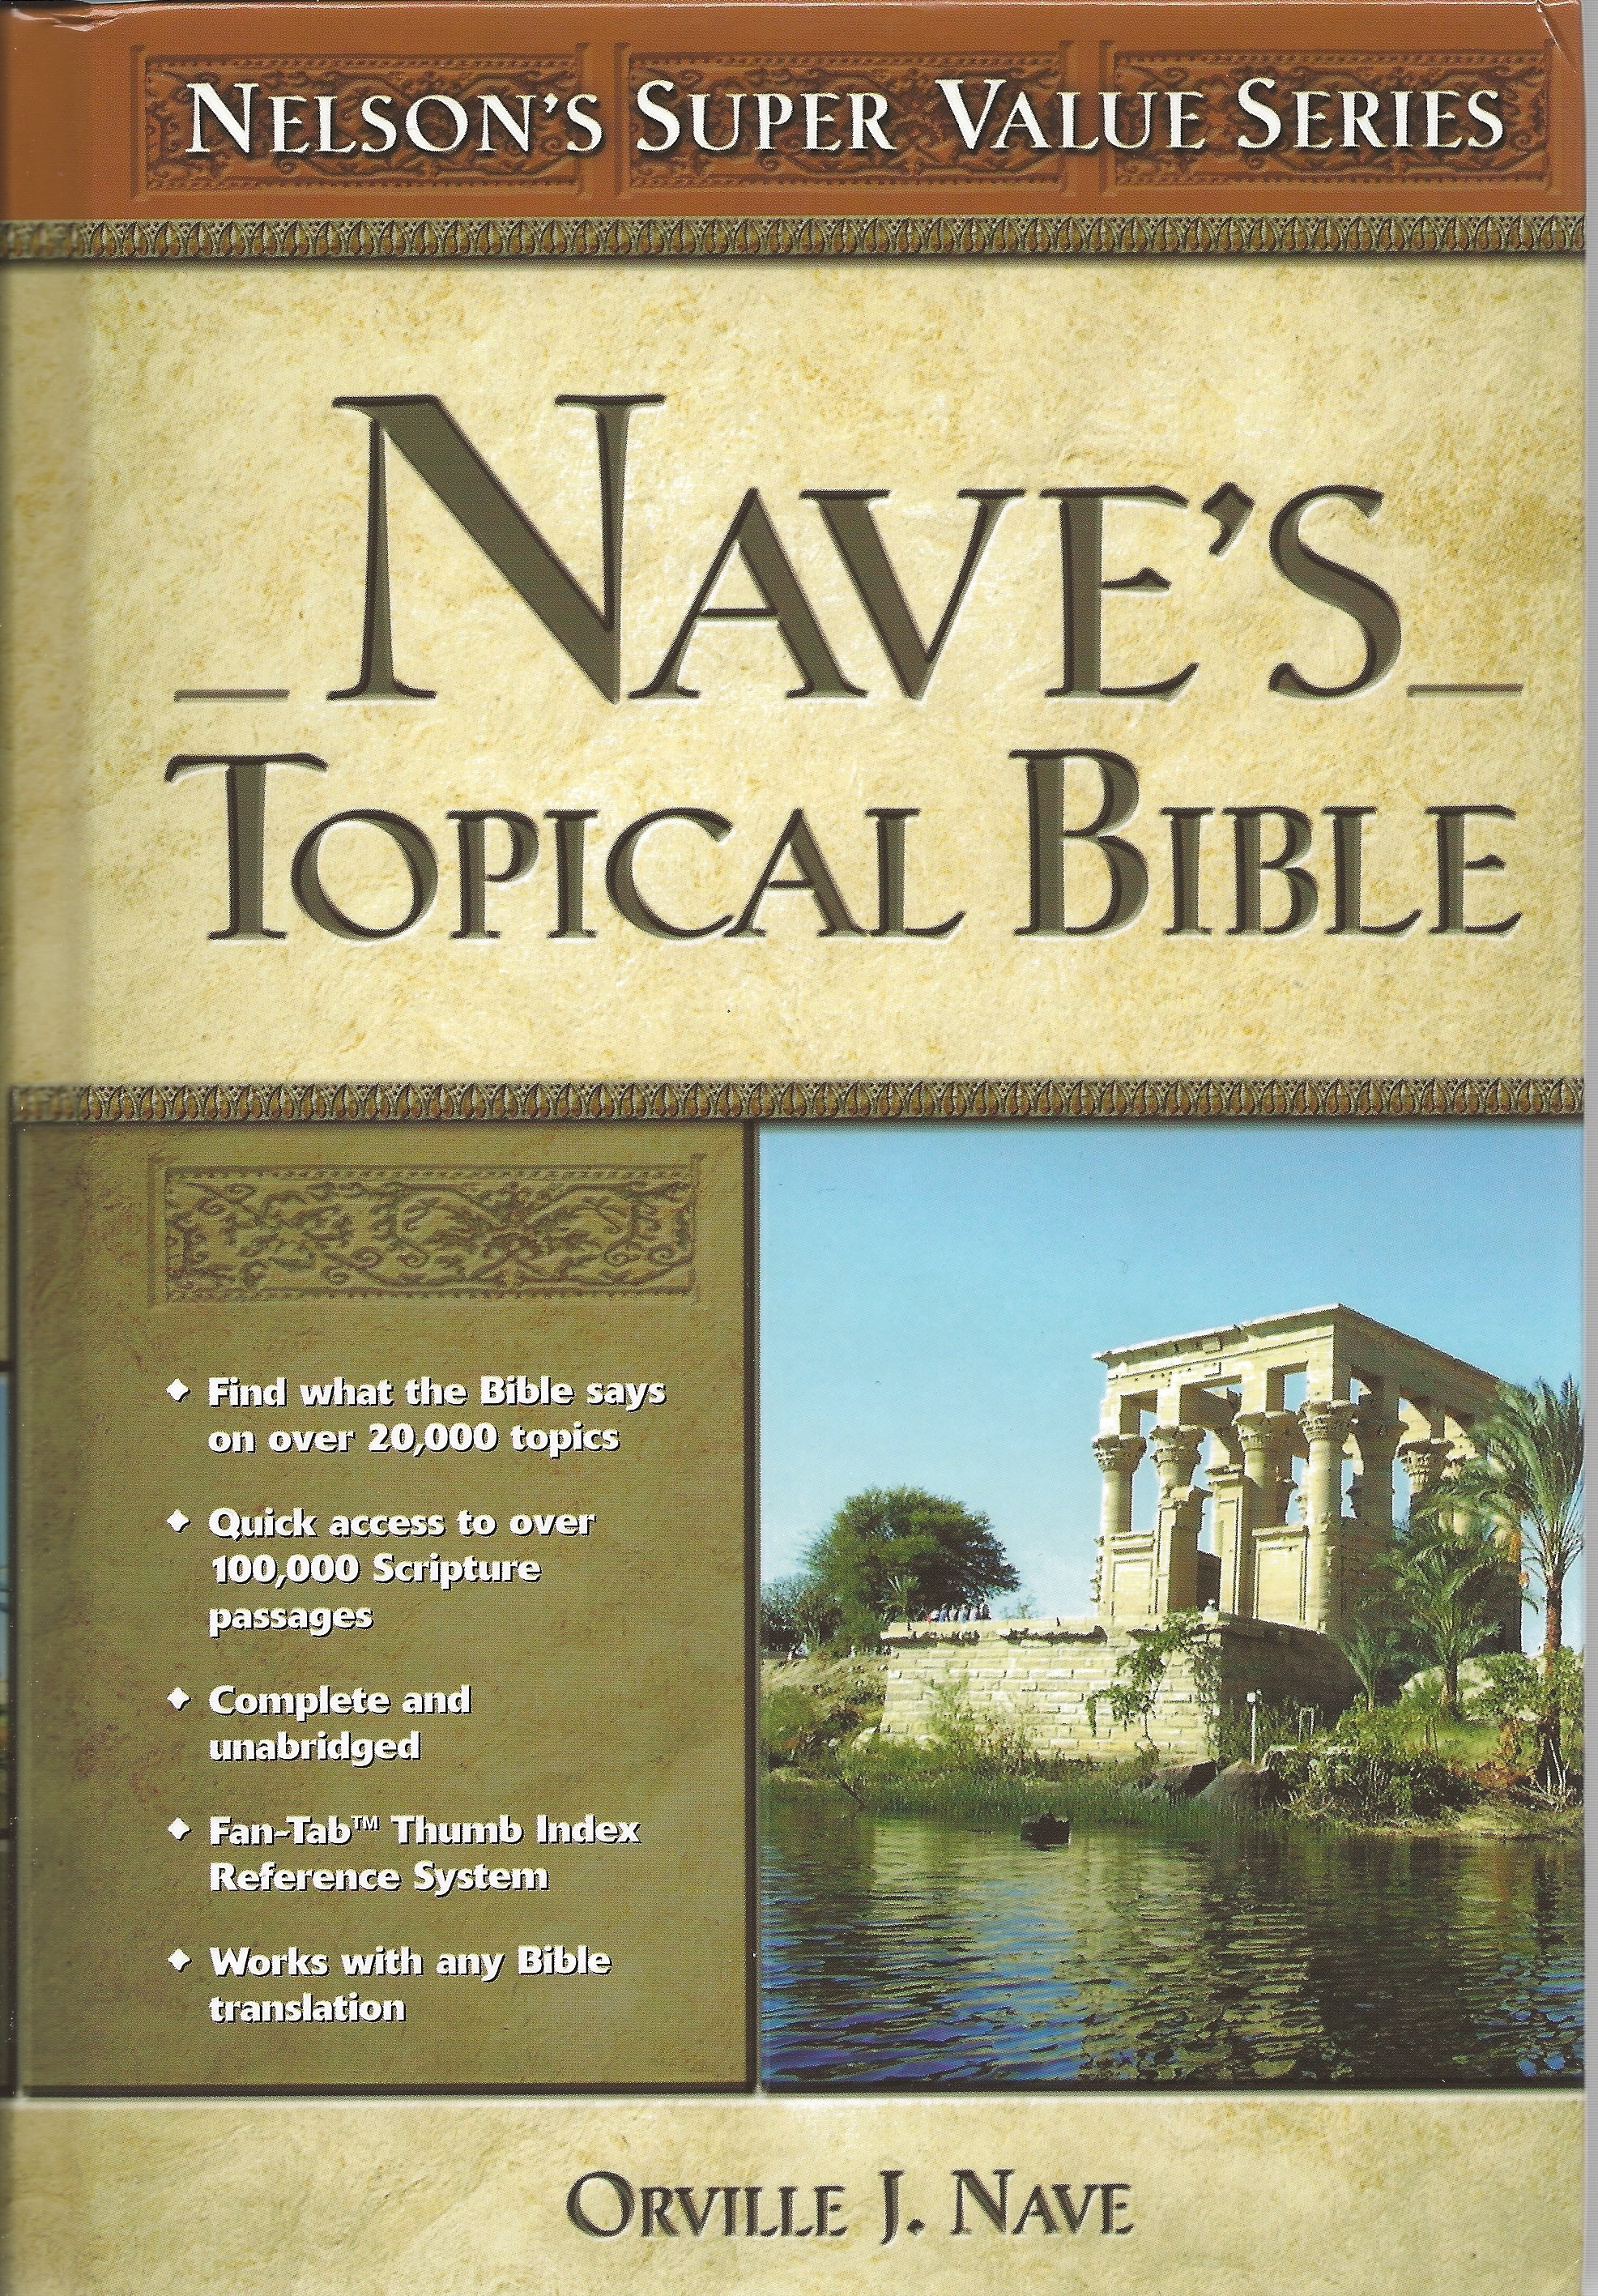 NAVE'S TOPICAL BIBLE Orville J. Nave